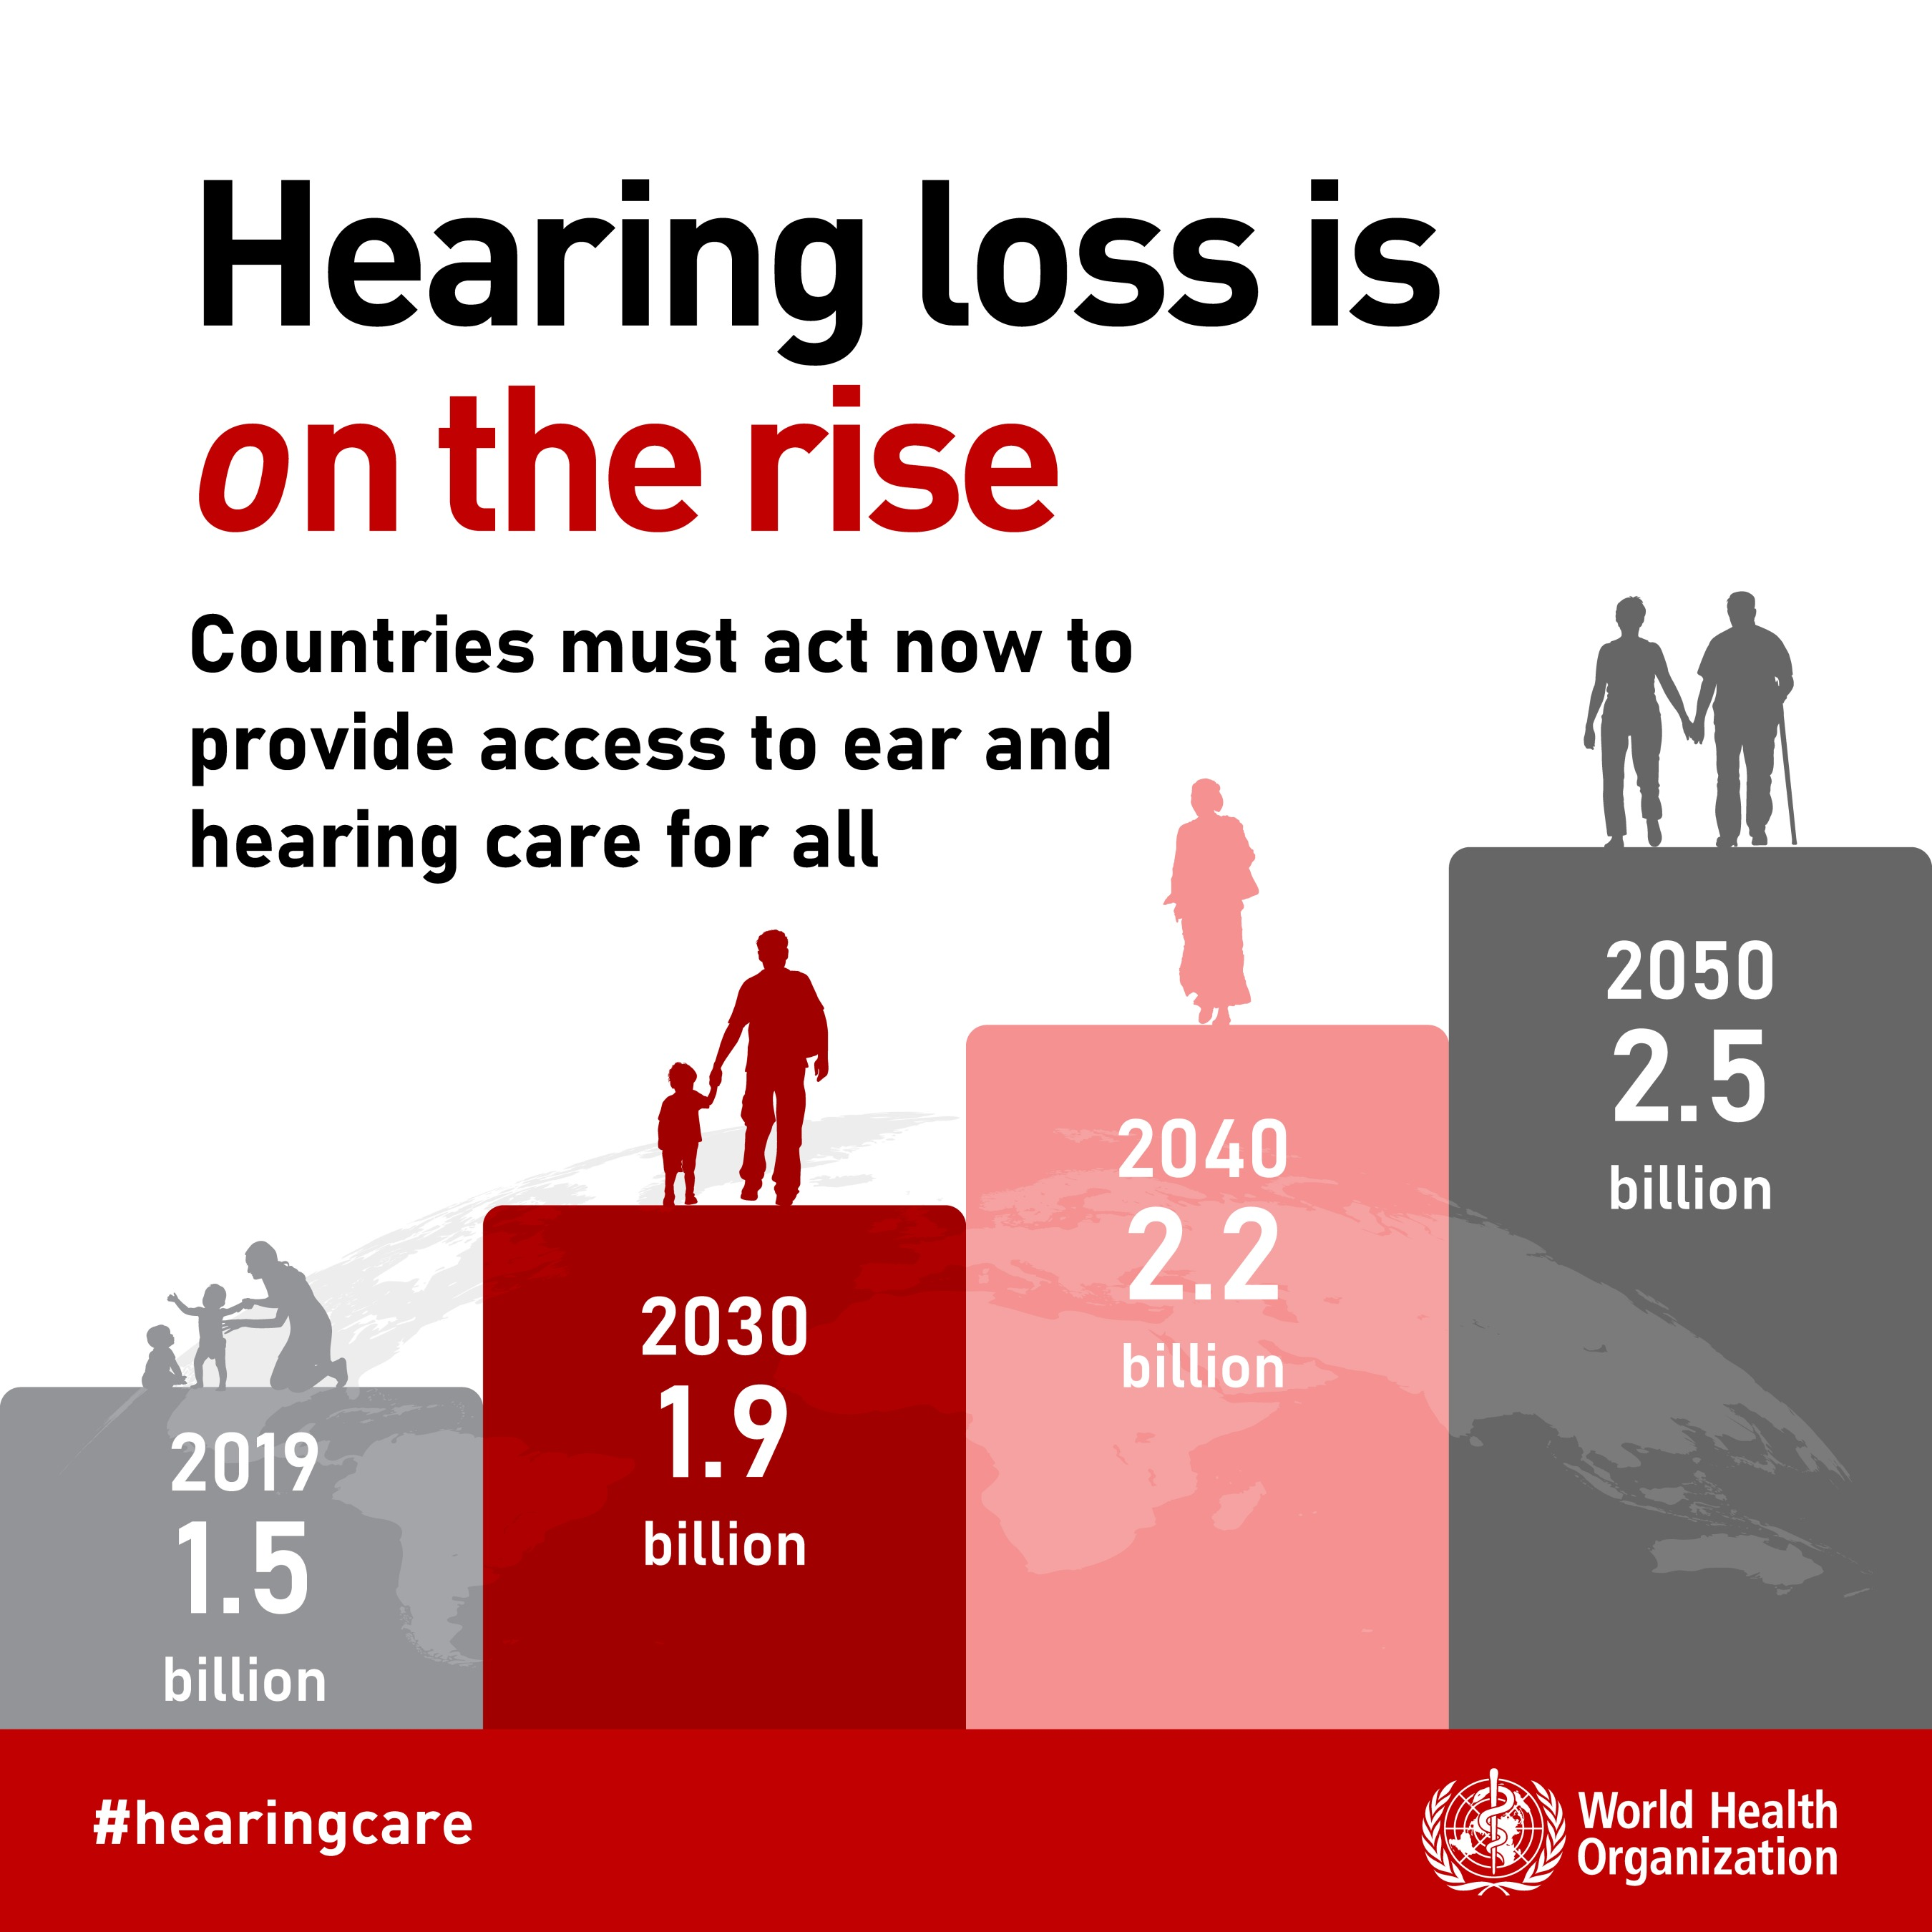 Hearing loss is on the rise. 1.5 billion people worldwide were affected in 2019 and this is predicted to rise to 2.5 billion in 2050. Countries must act now to provide access to ear and hearing care for all. Source: World Health Organisation.